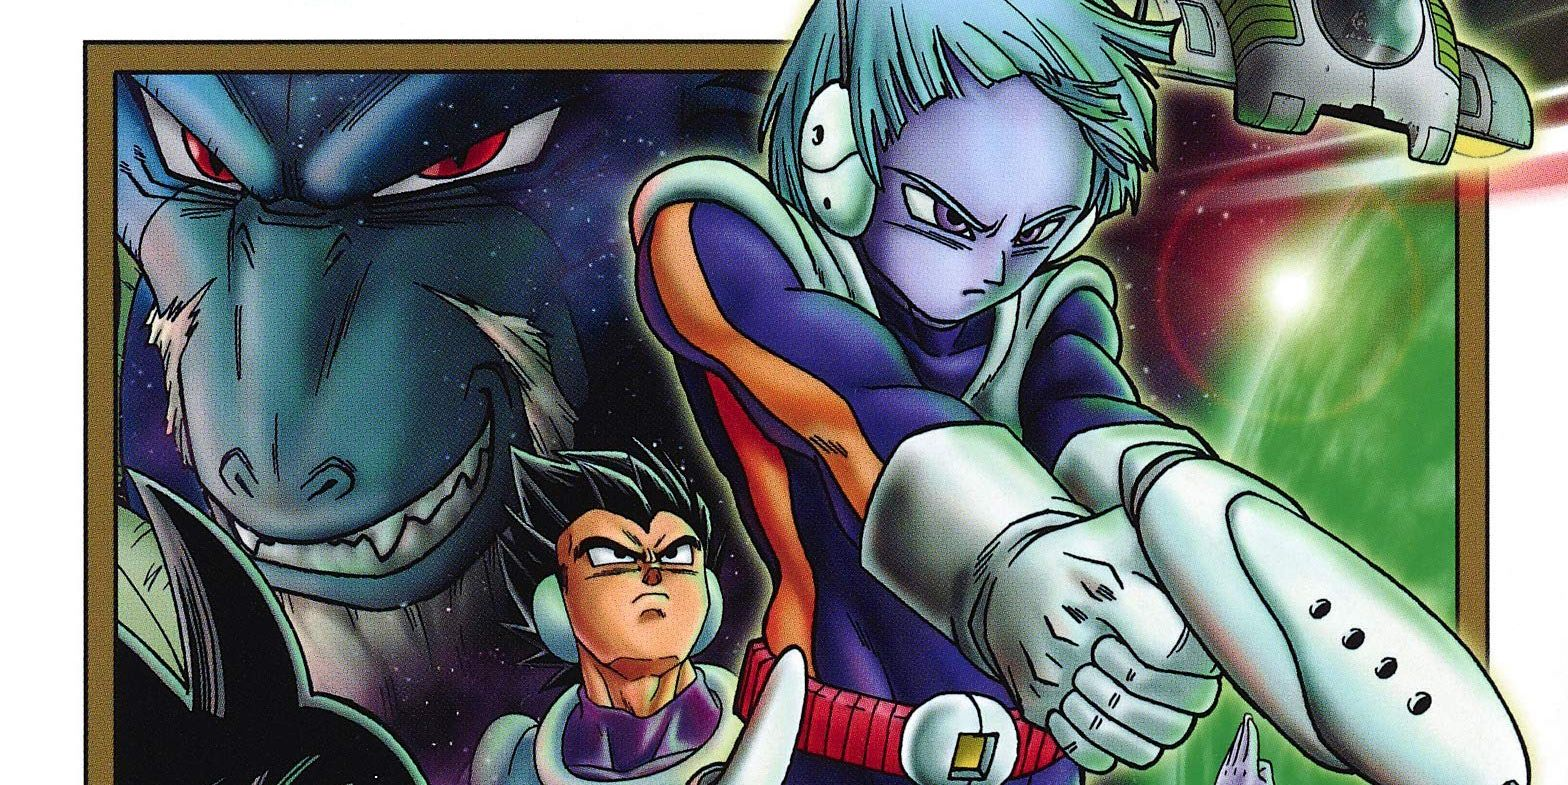 Dragon Ball Super: One of the Galaxy's Deadliest Criminals Arrives on Earth